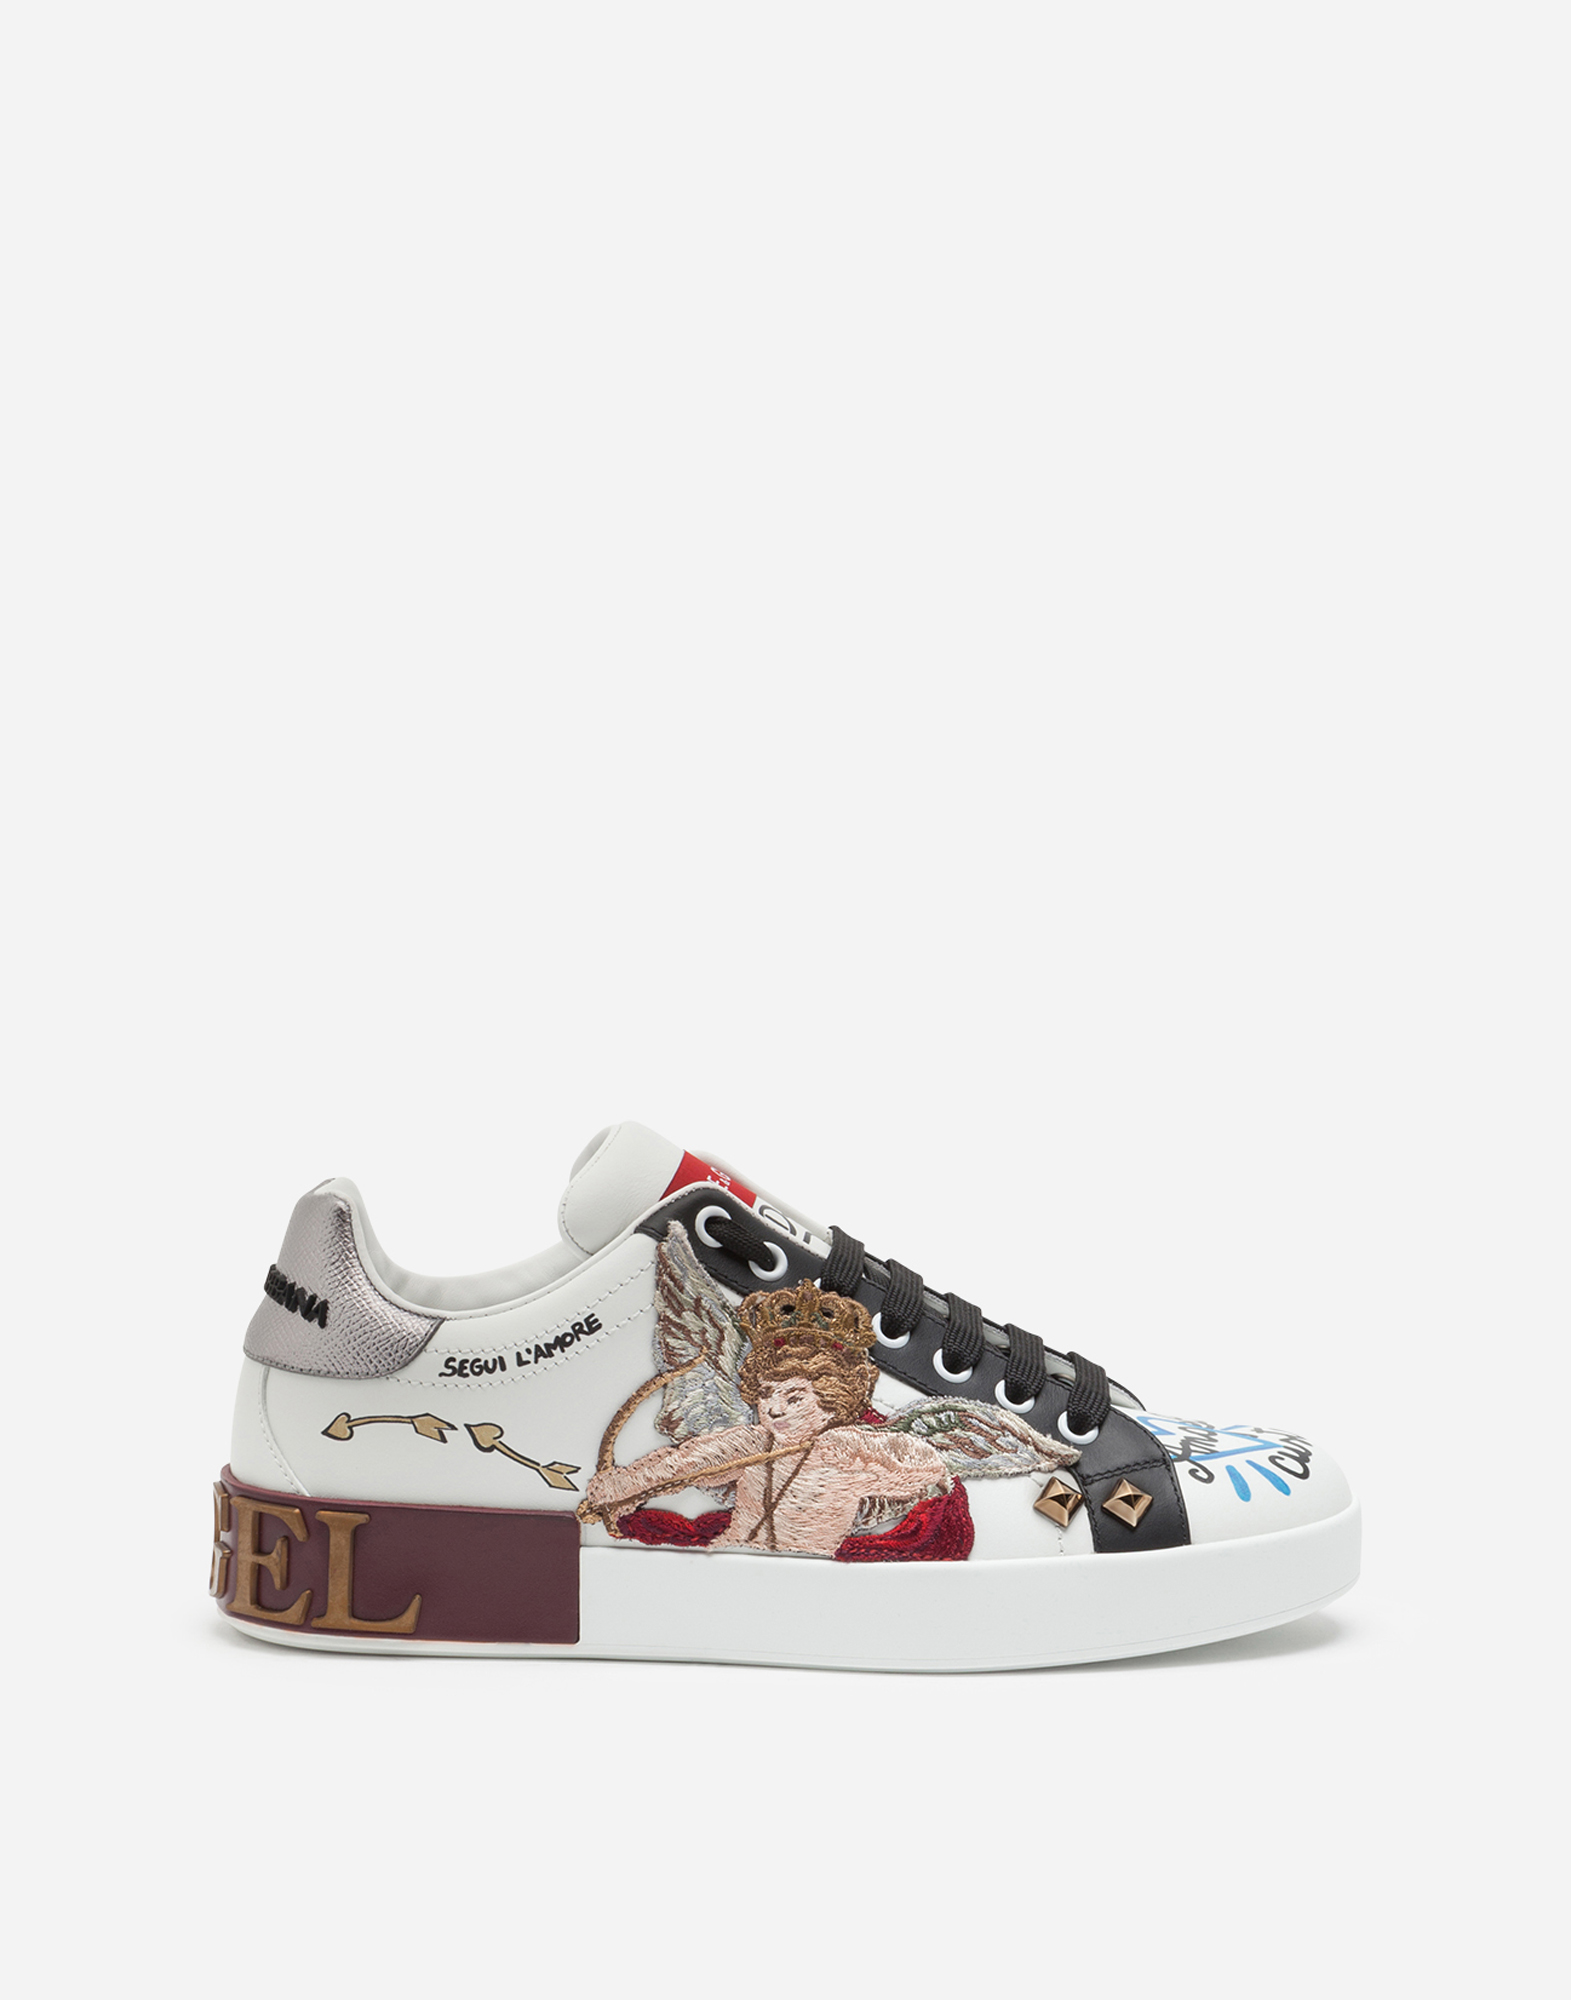 Dolce & Gabbana PORTOFINO SNEAKERS IN PRINTED CALFSKIN WITH CUPID PATCH AND APPLIQUÉS